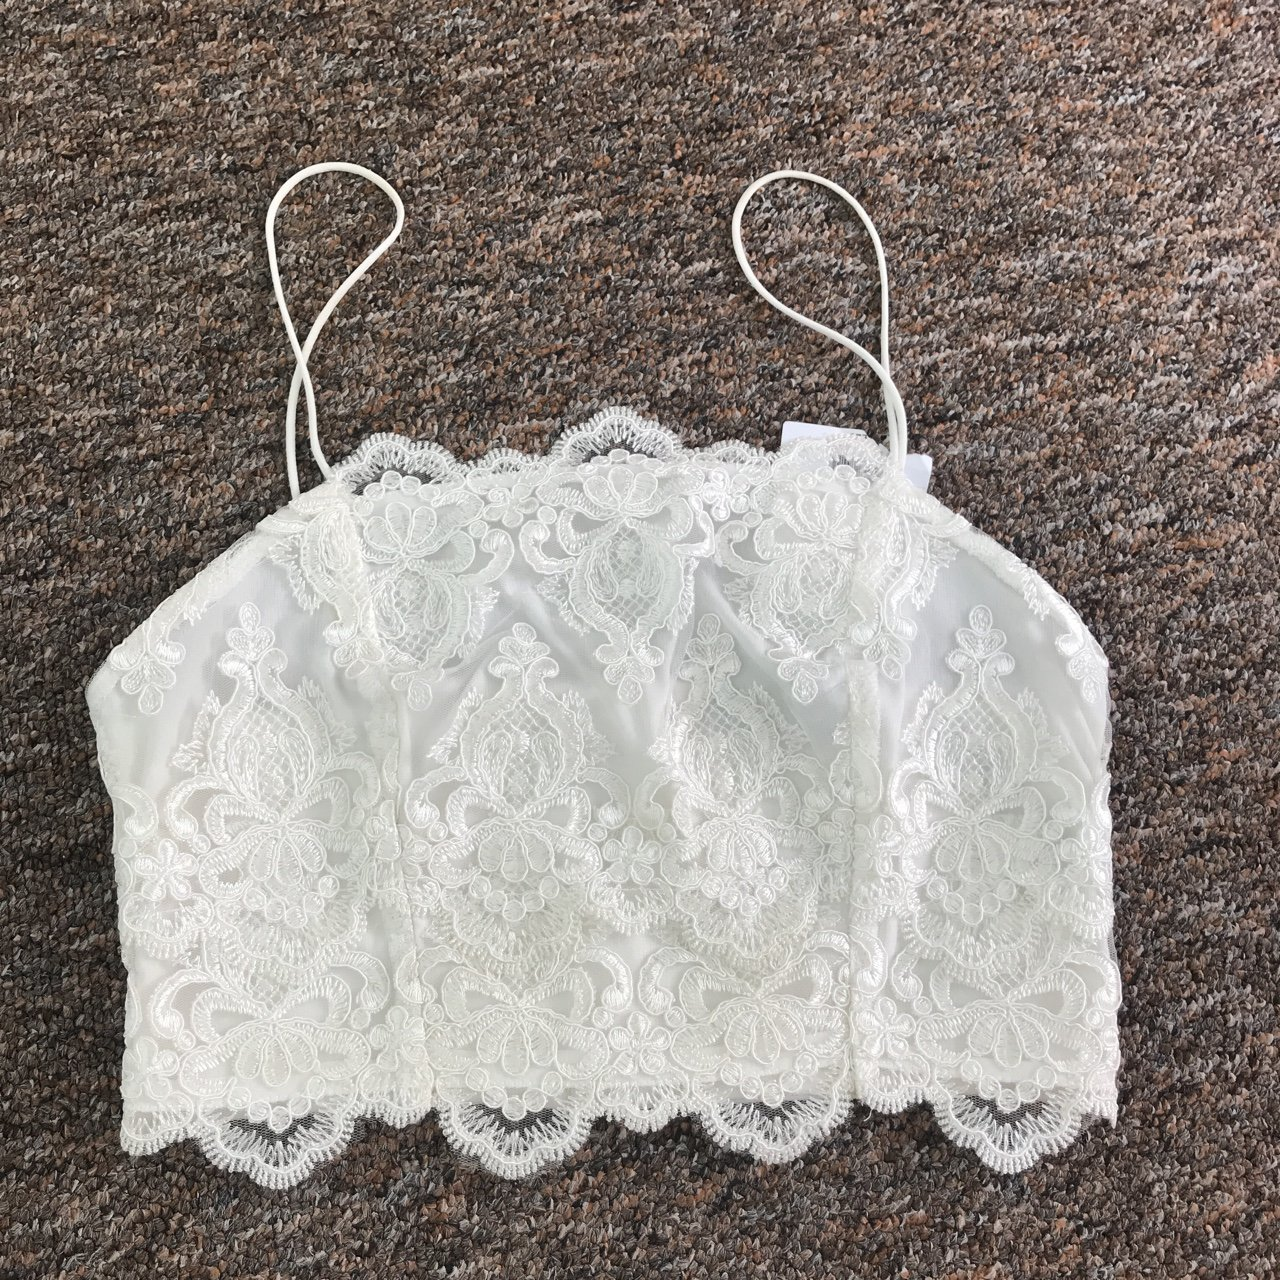 498b4469c6ceb Topshop size 10 White lace embroided crop top Square neck   - Depop